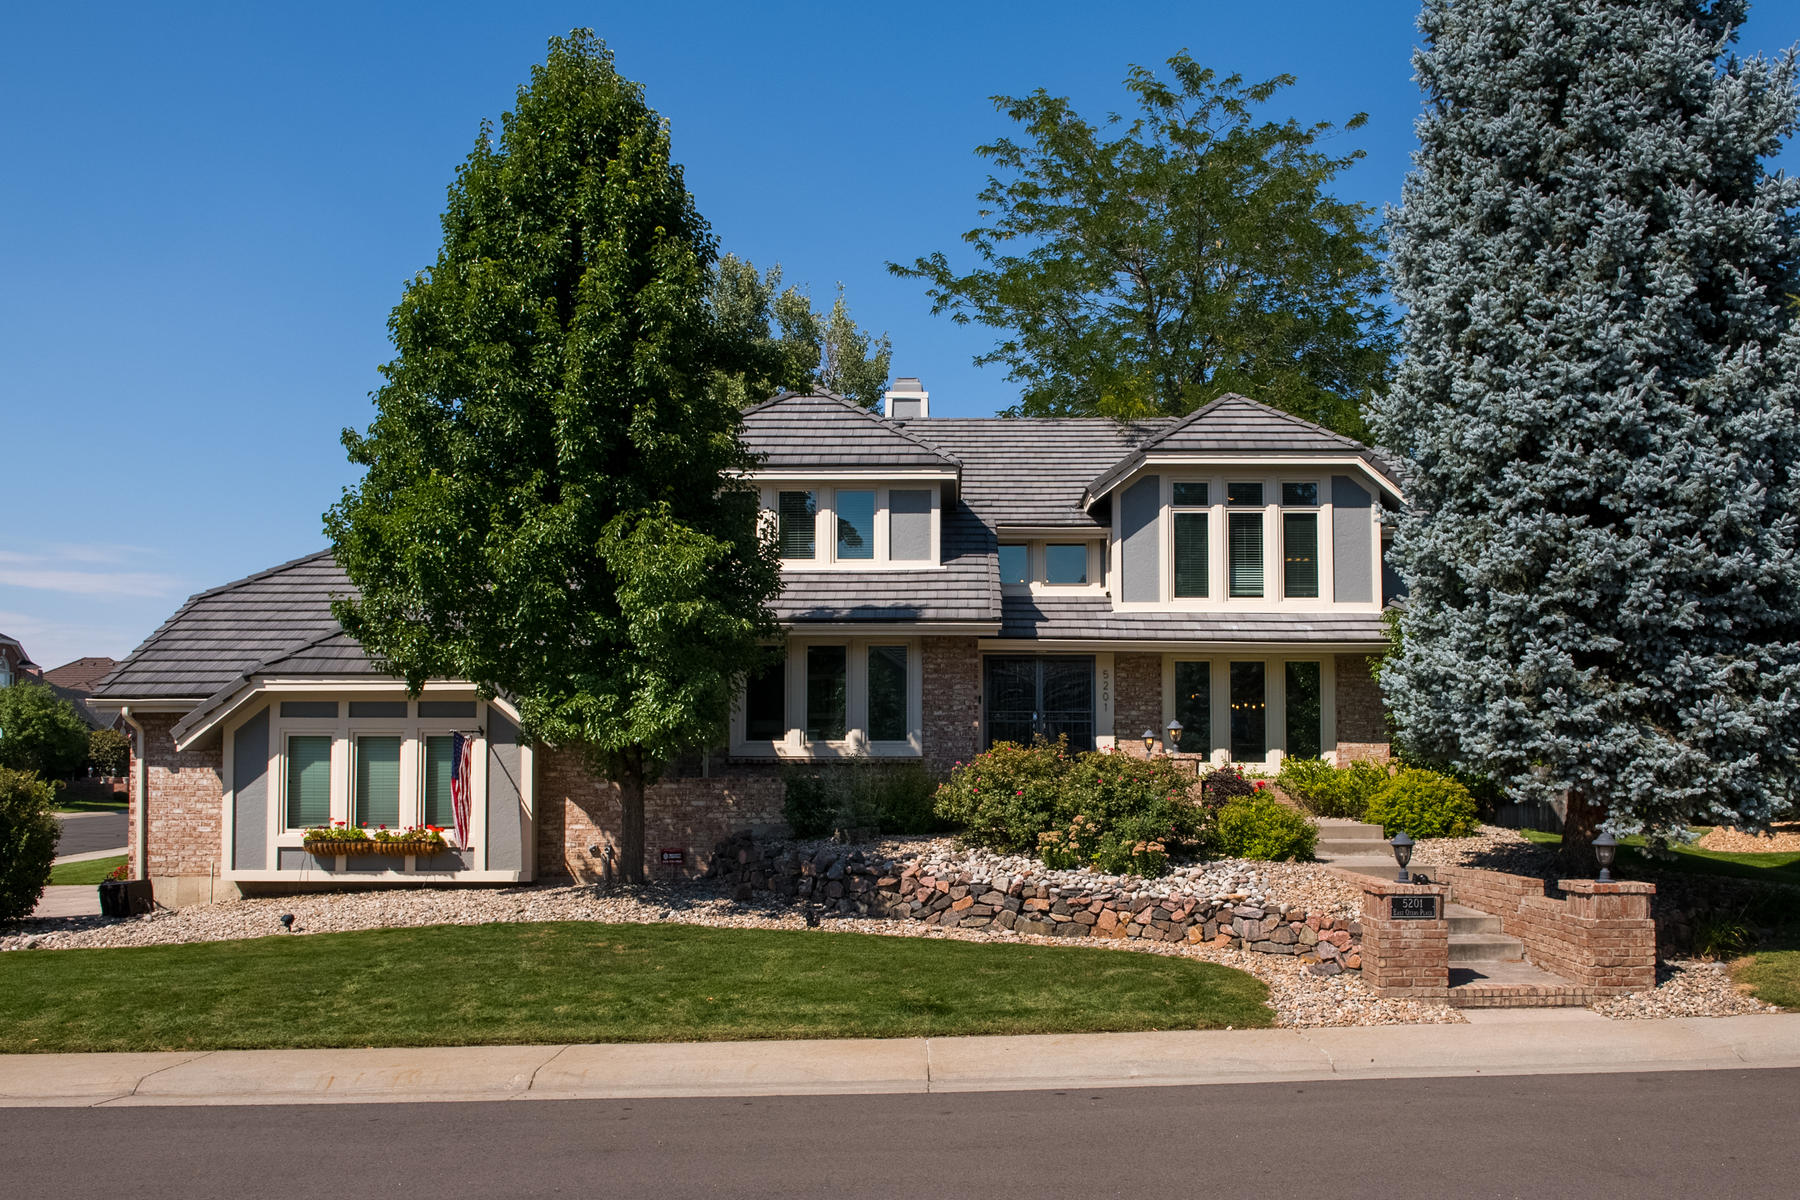 Single Family Home for Active at Exceptional Heritage Greens home recently remodeled from top to bottom! 5201 E Otero Place Centennial, Colorado 80122 United States